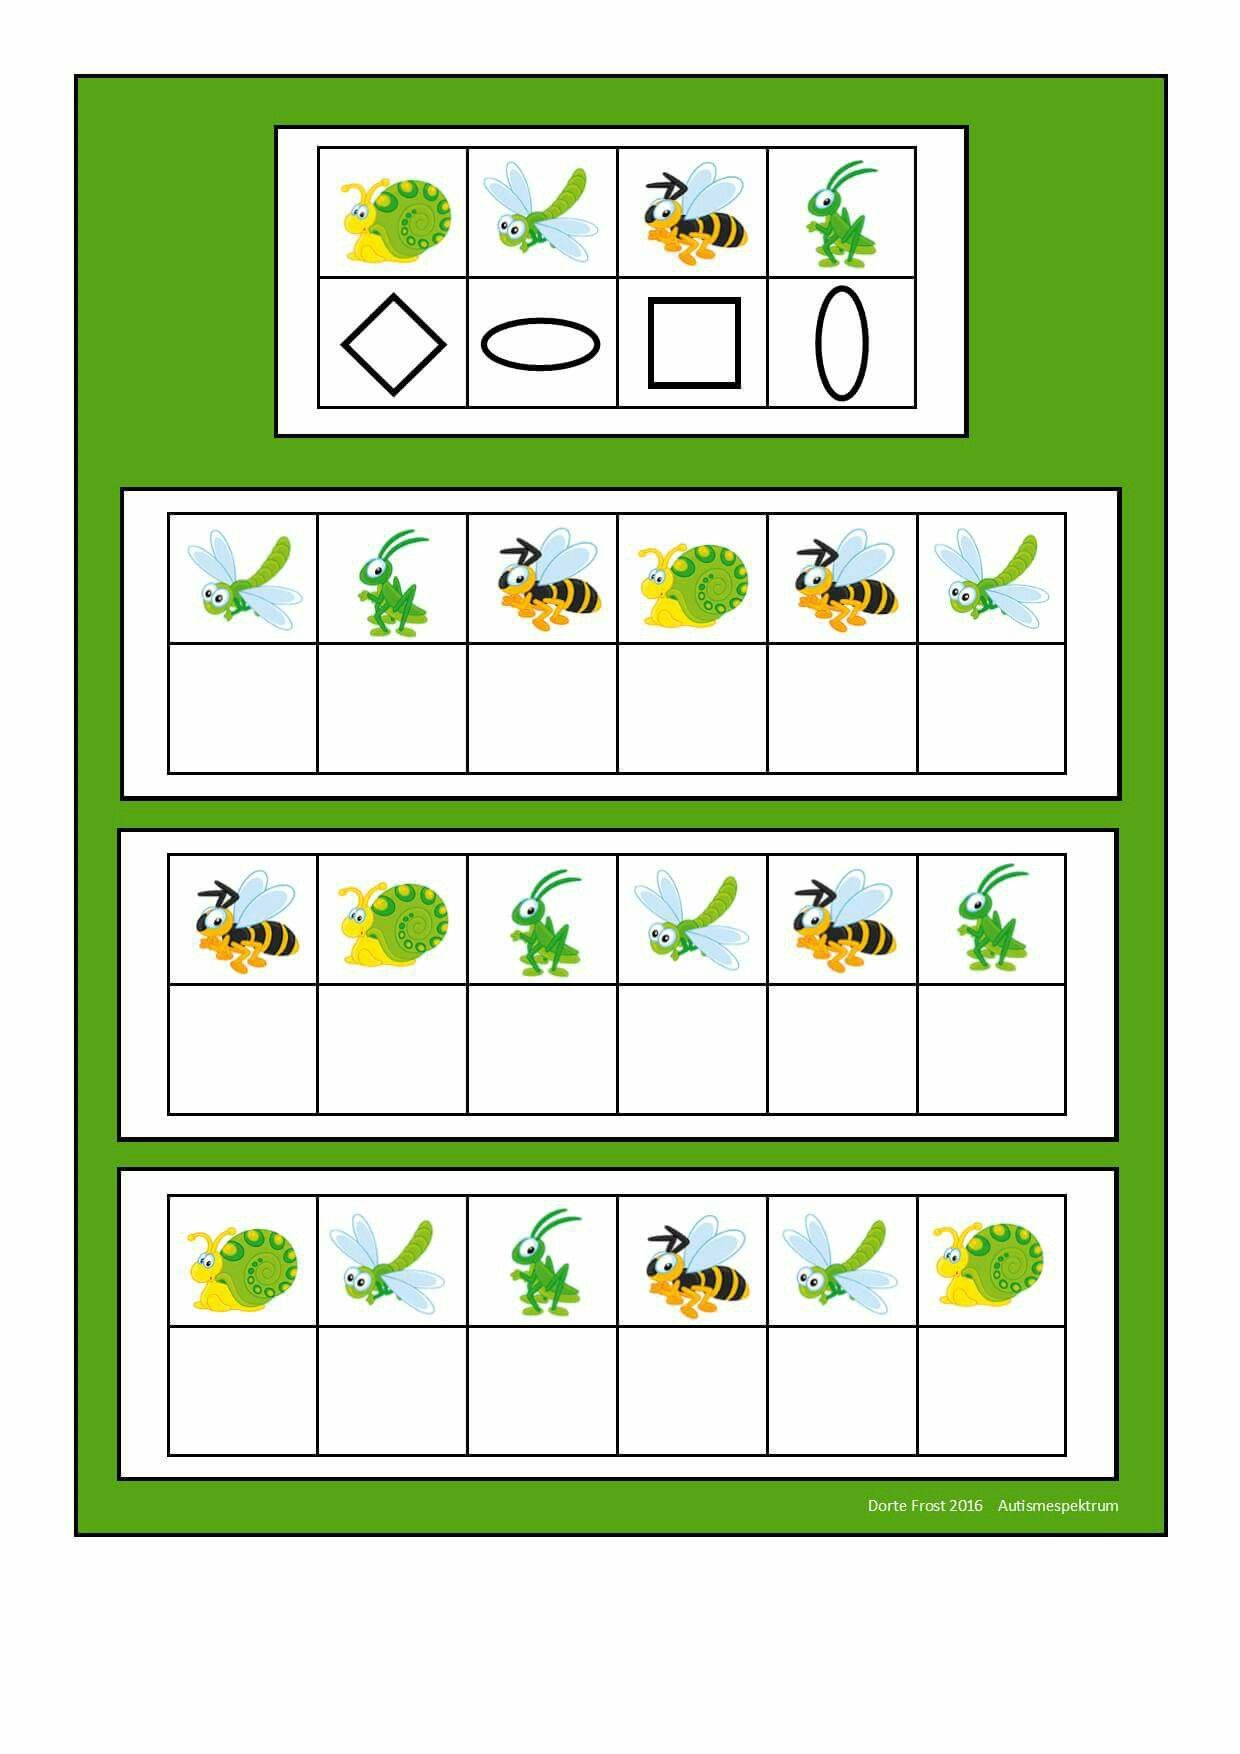 Pin By Migyoung Kim On Logika Visual Perception Activities Preschool Learning Activities Visual Discrimination Worksheets [ 1754 x 1240 Pixel ]